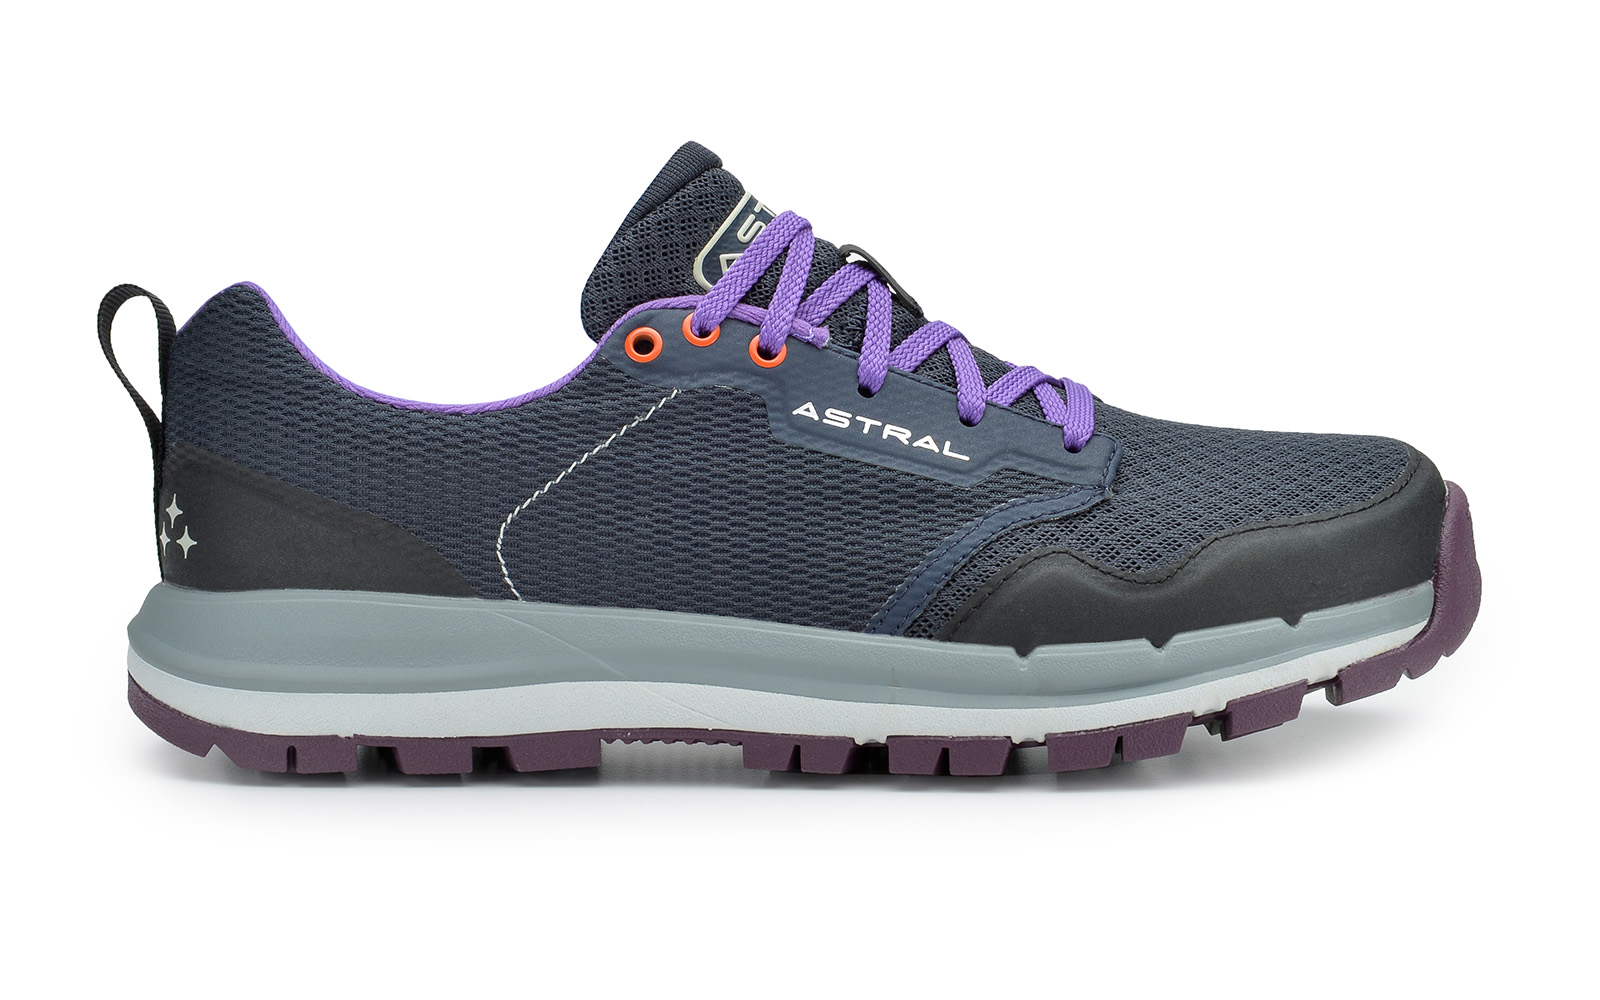 a99e862ebbe1 Astral TR1 Mesh Water Shoes - Women s with Free S H — CampSaver